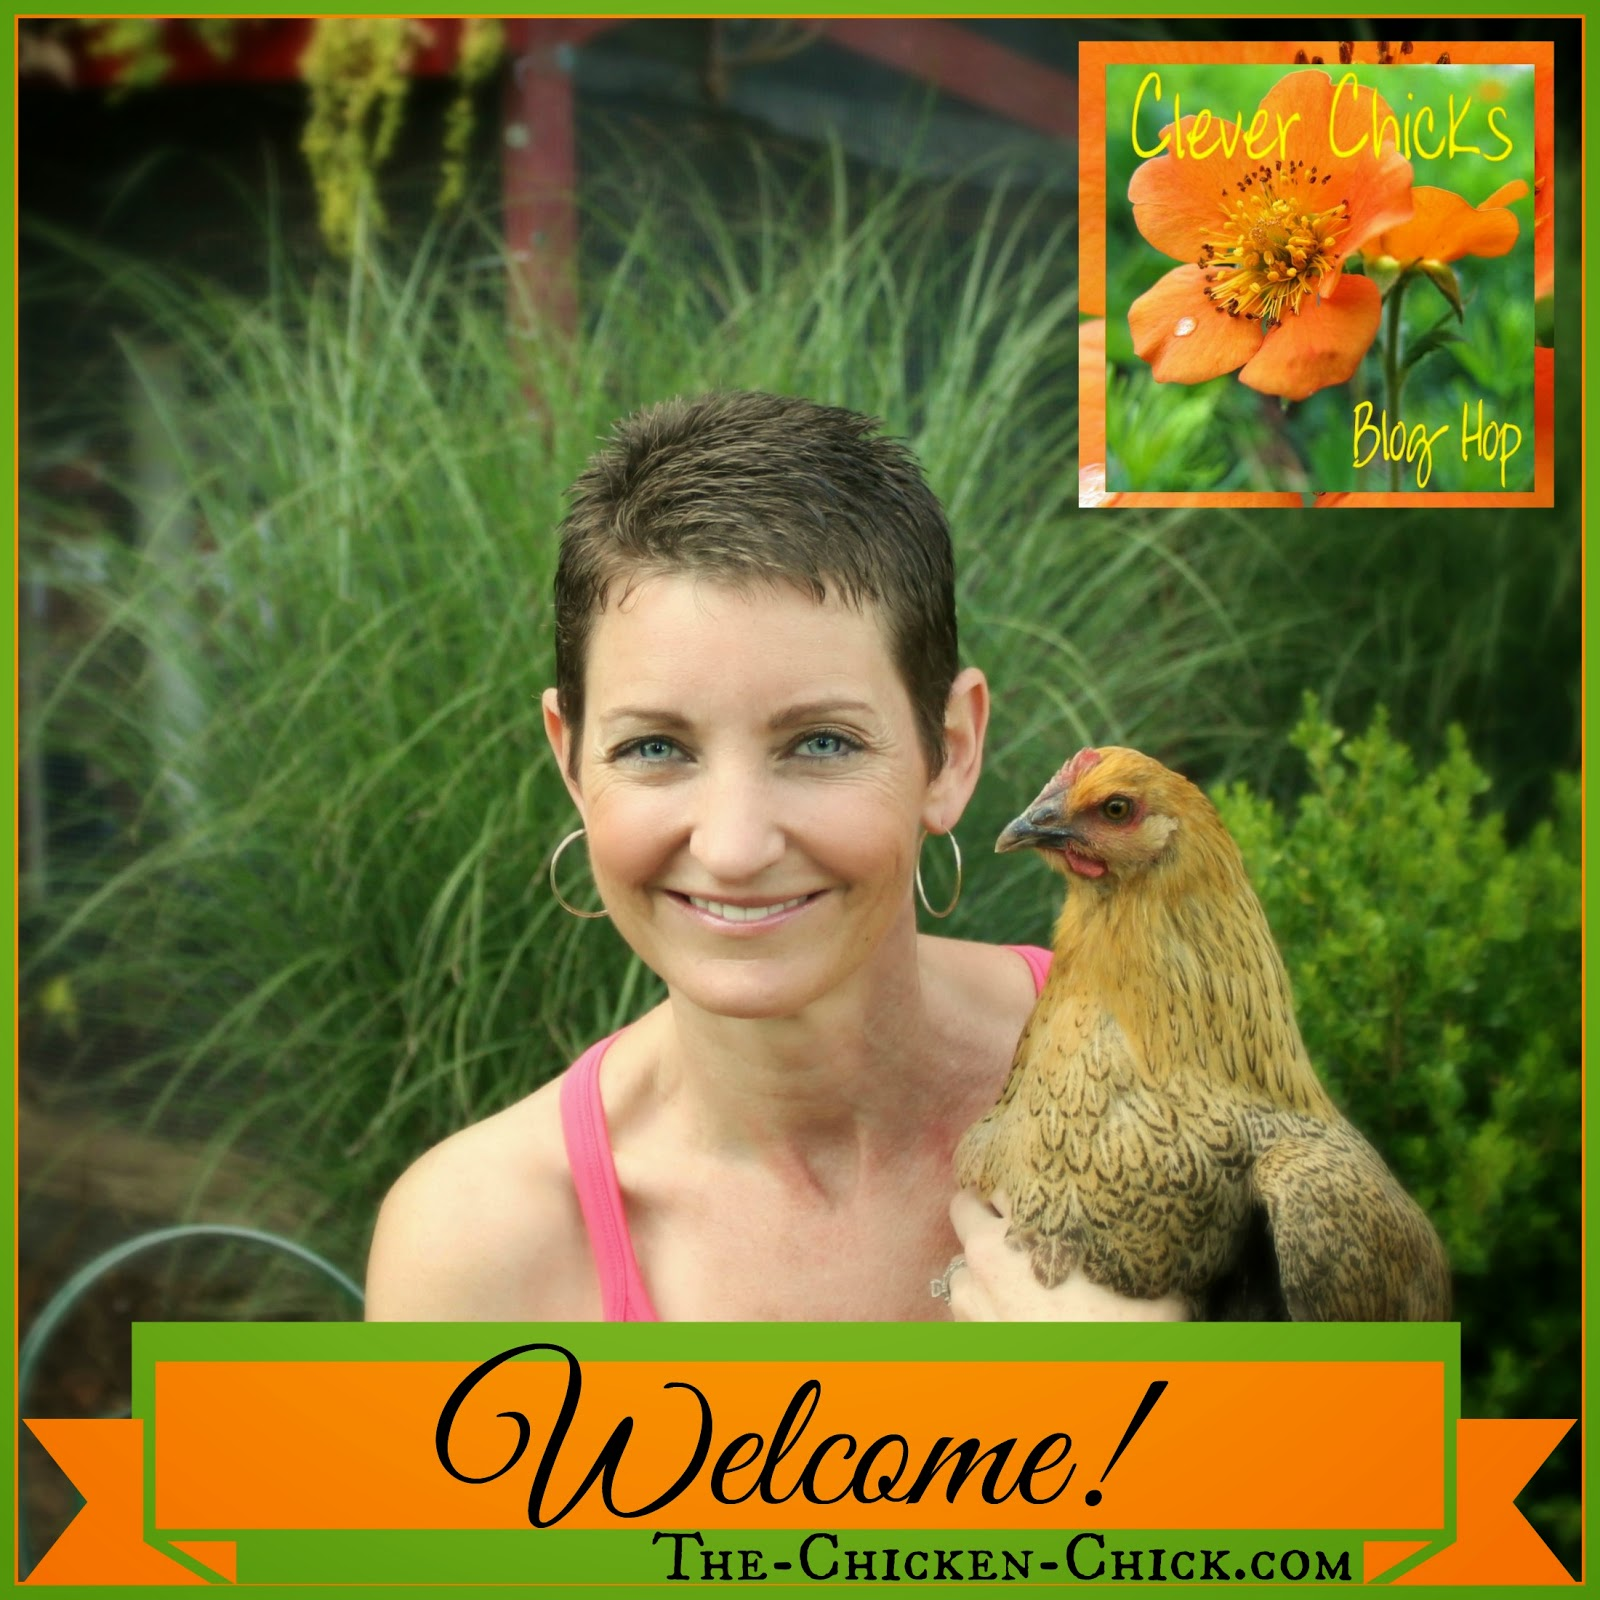 Welcome to the Clever Chicks Blog Hop at The-Chicken-Chick.com!